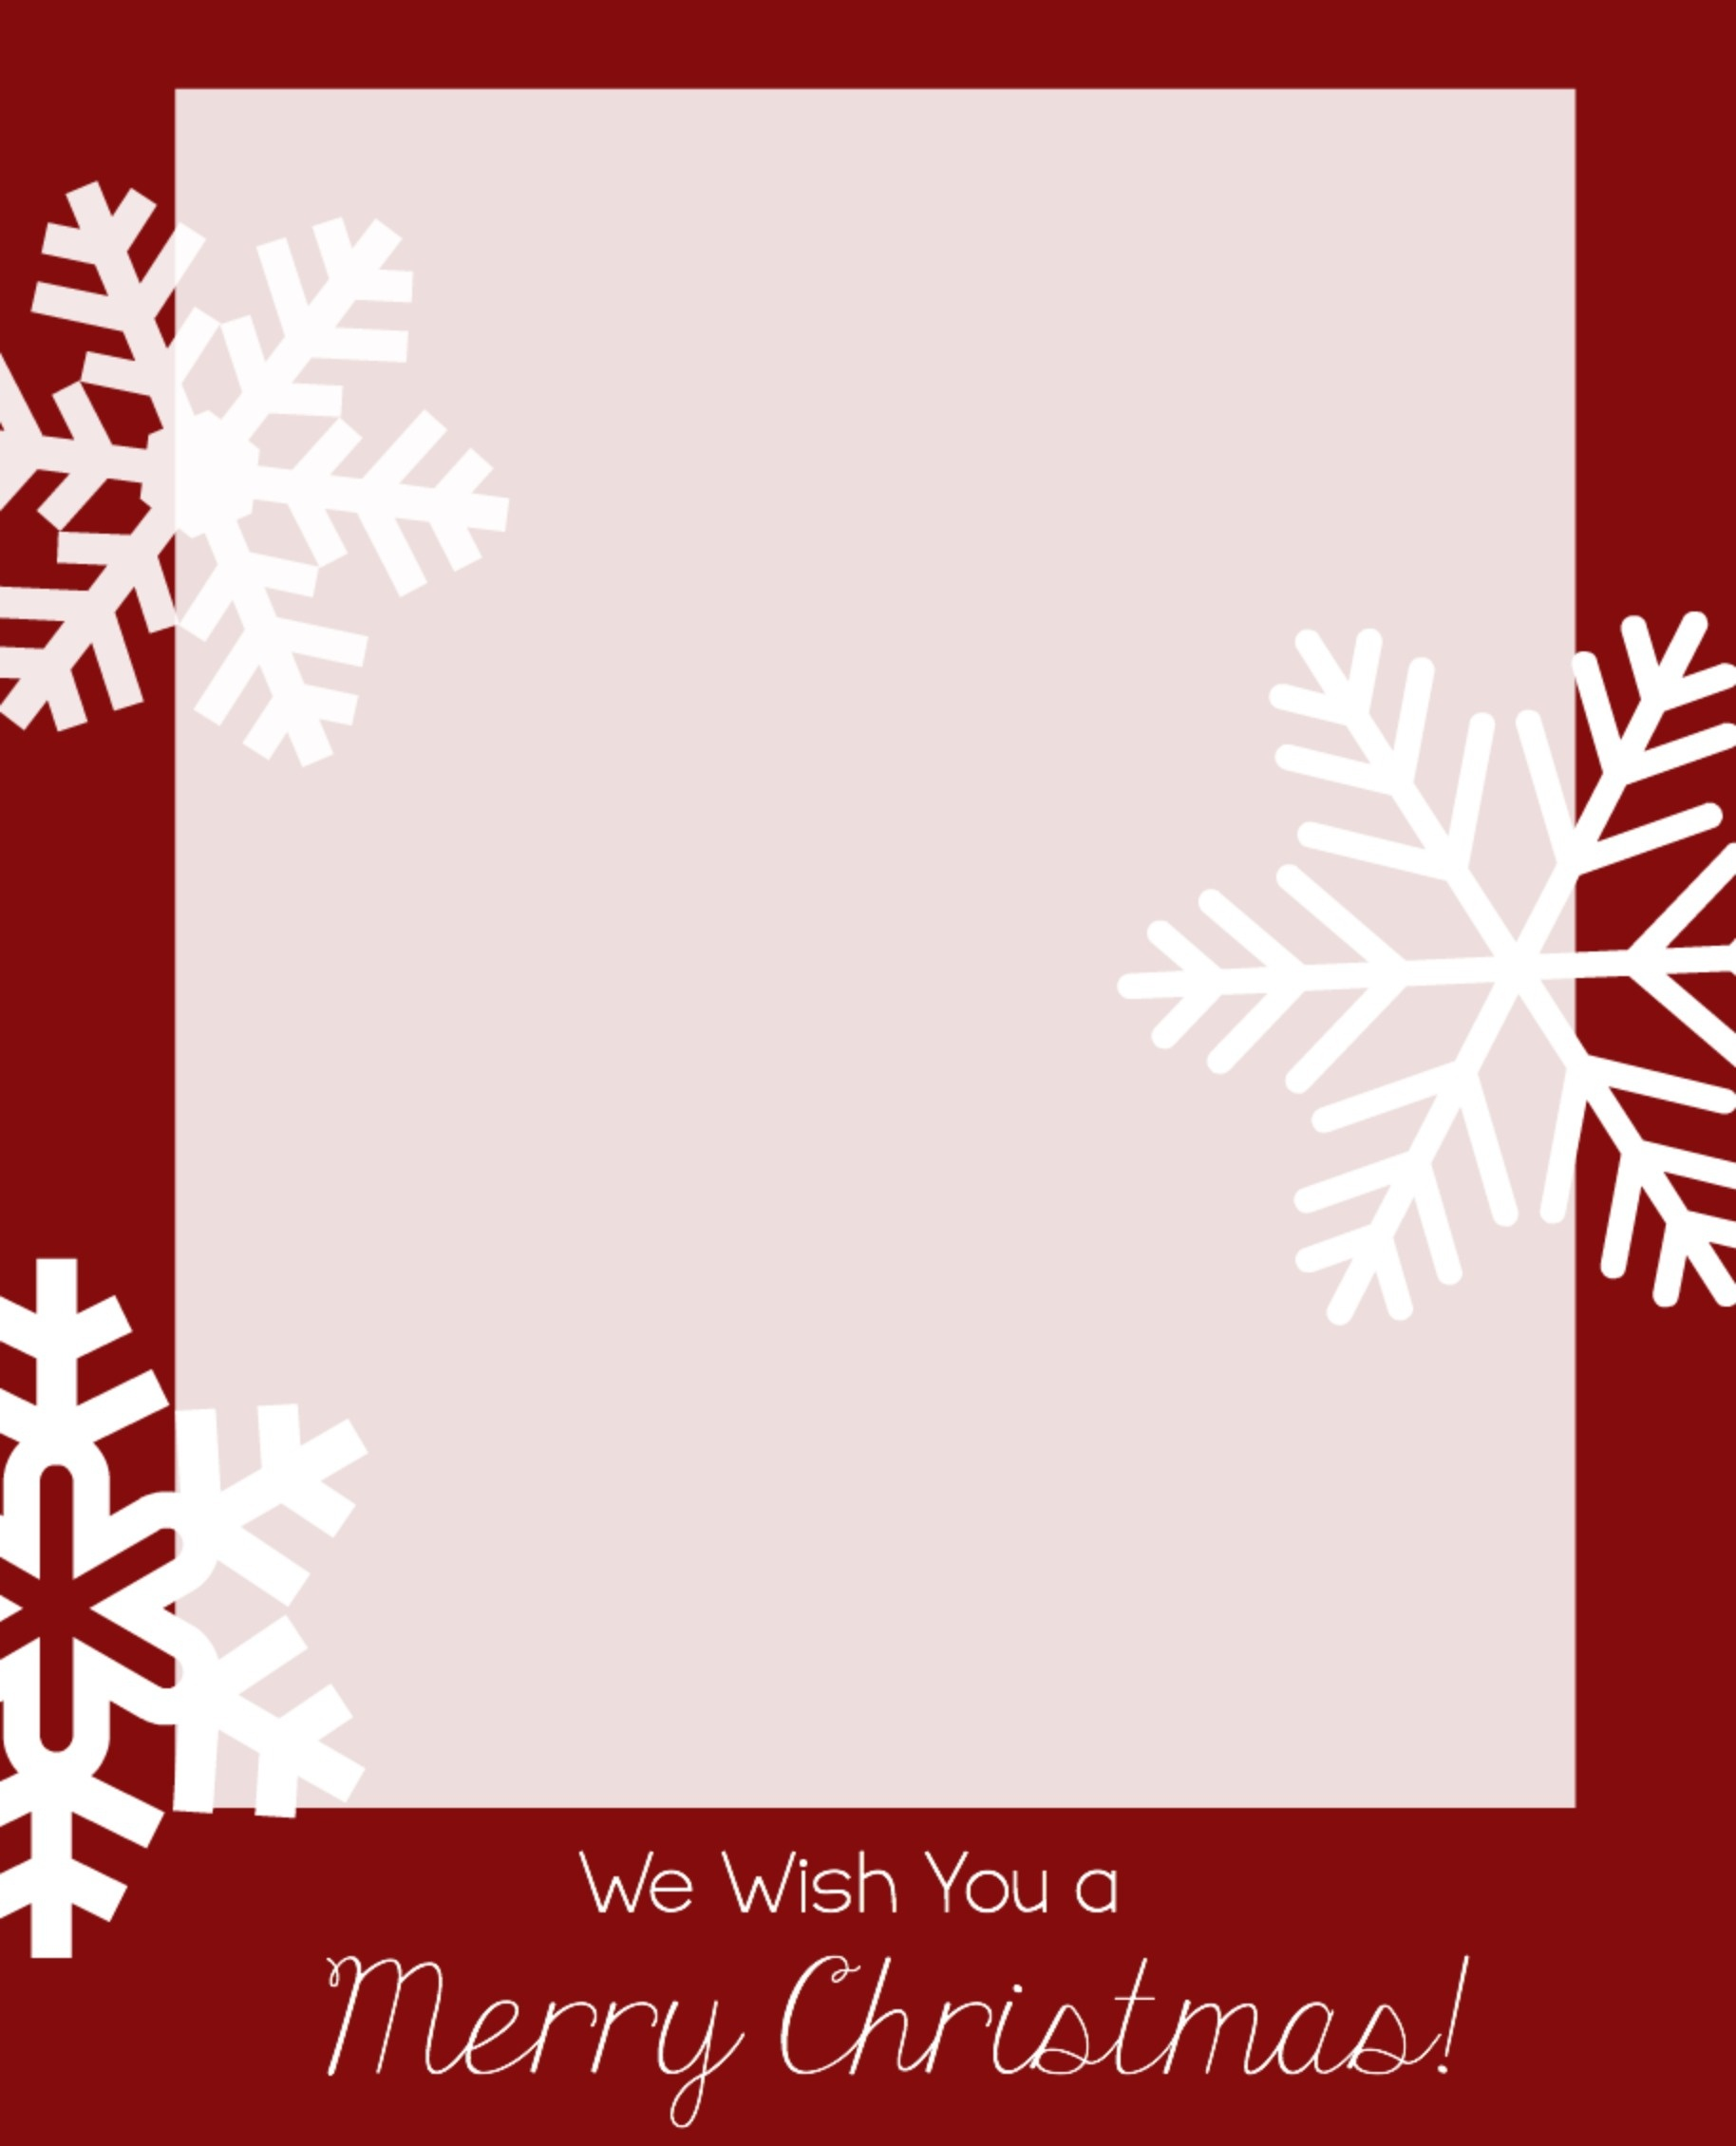 Microsoft Word Christmas Card Template - Tutlin.psstech.co - Free Printable Christmas Cards With Photo Insert